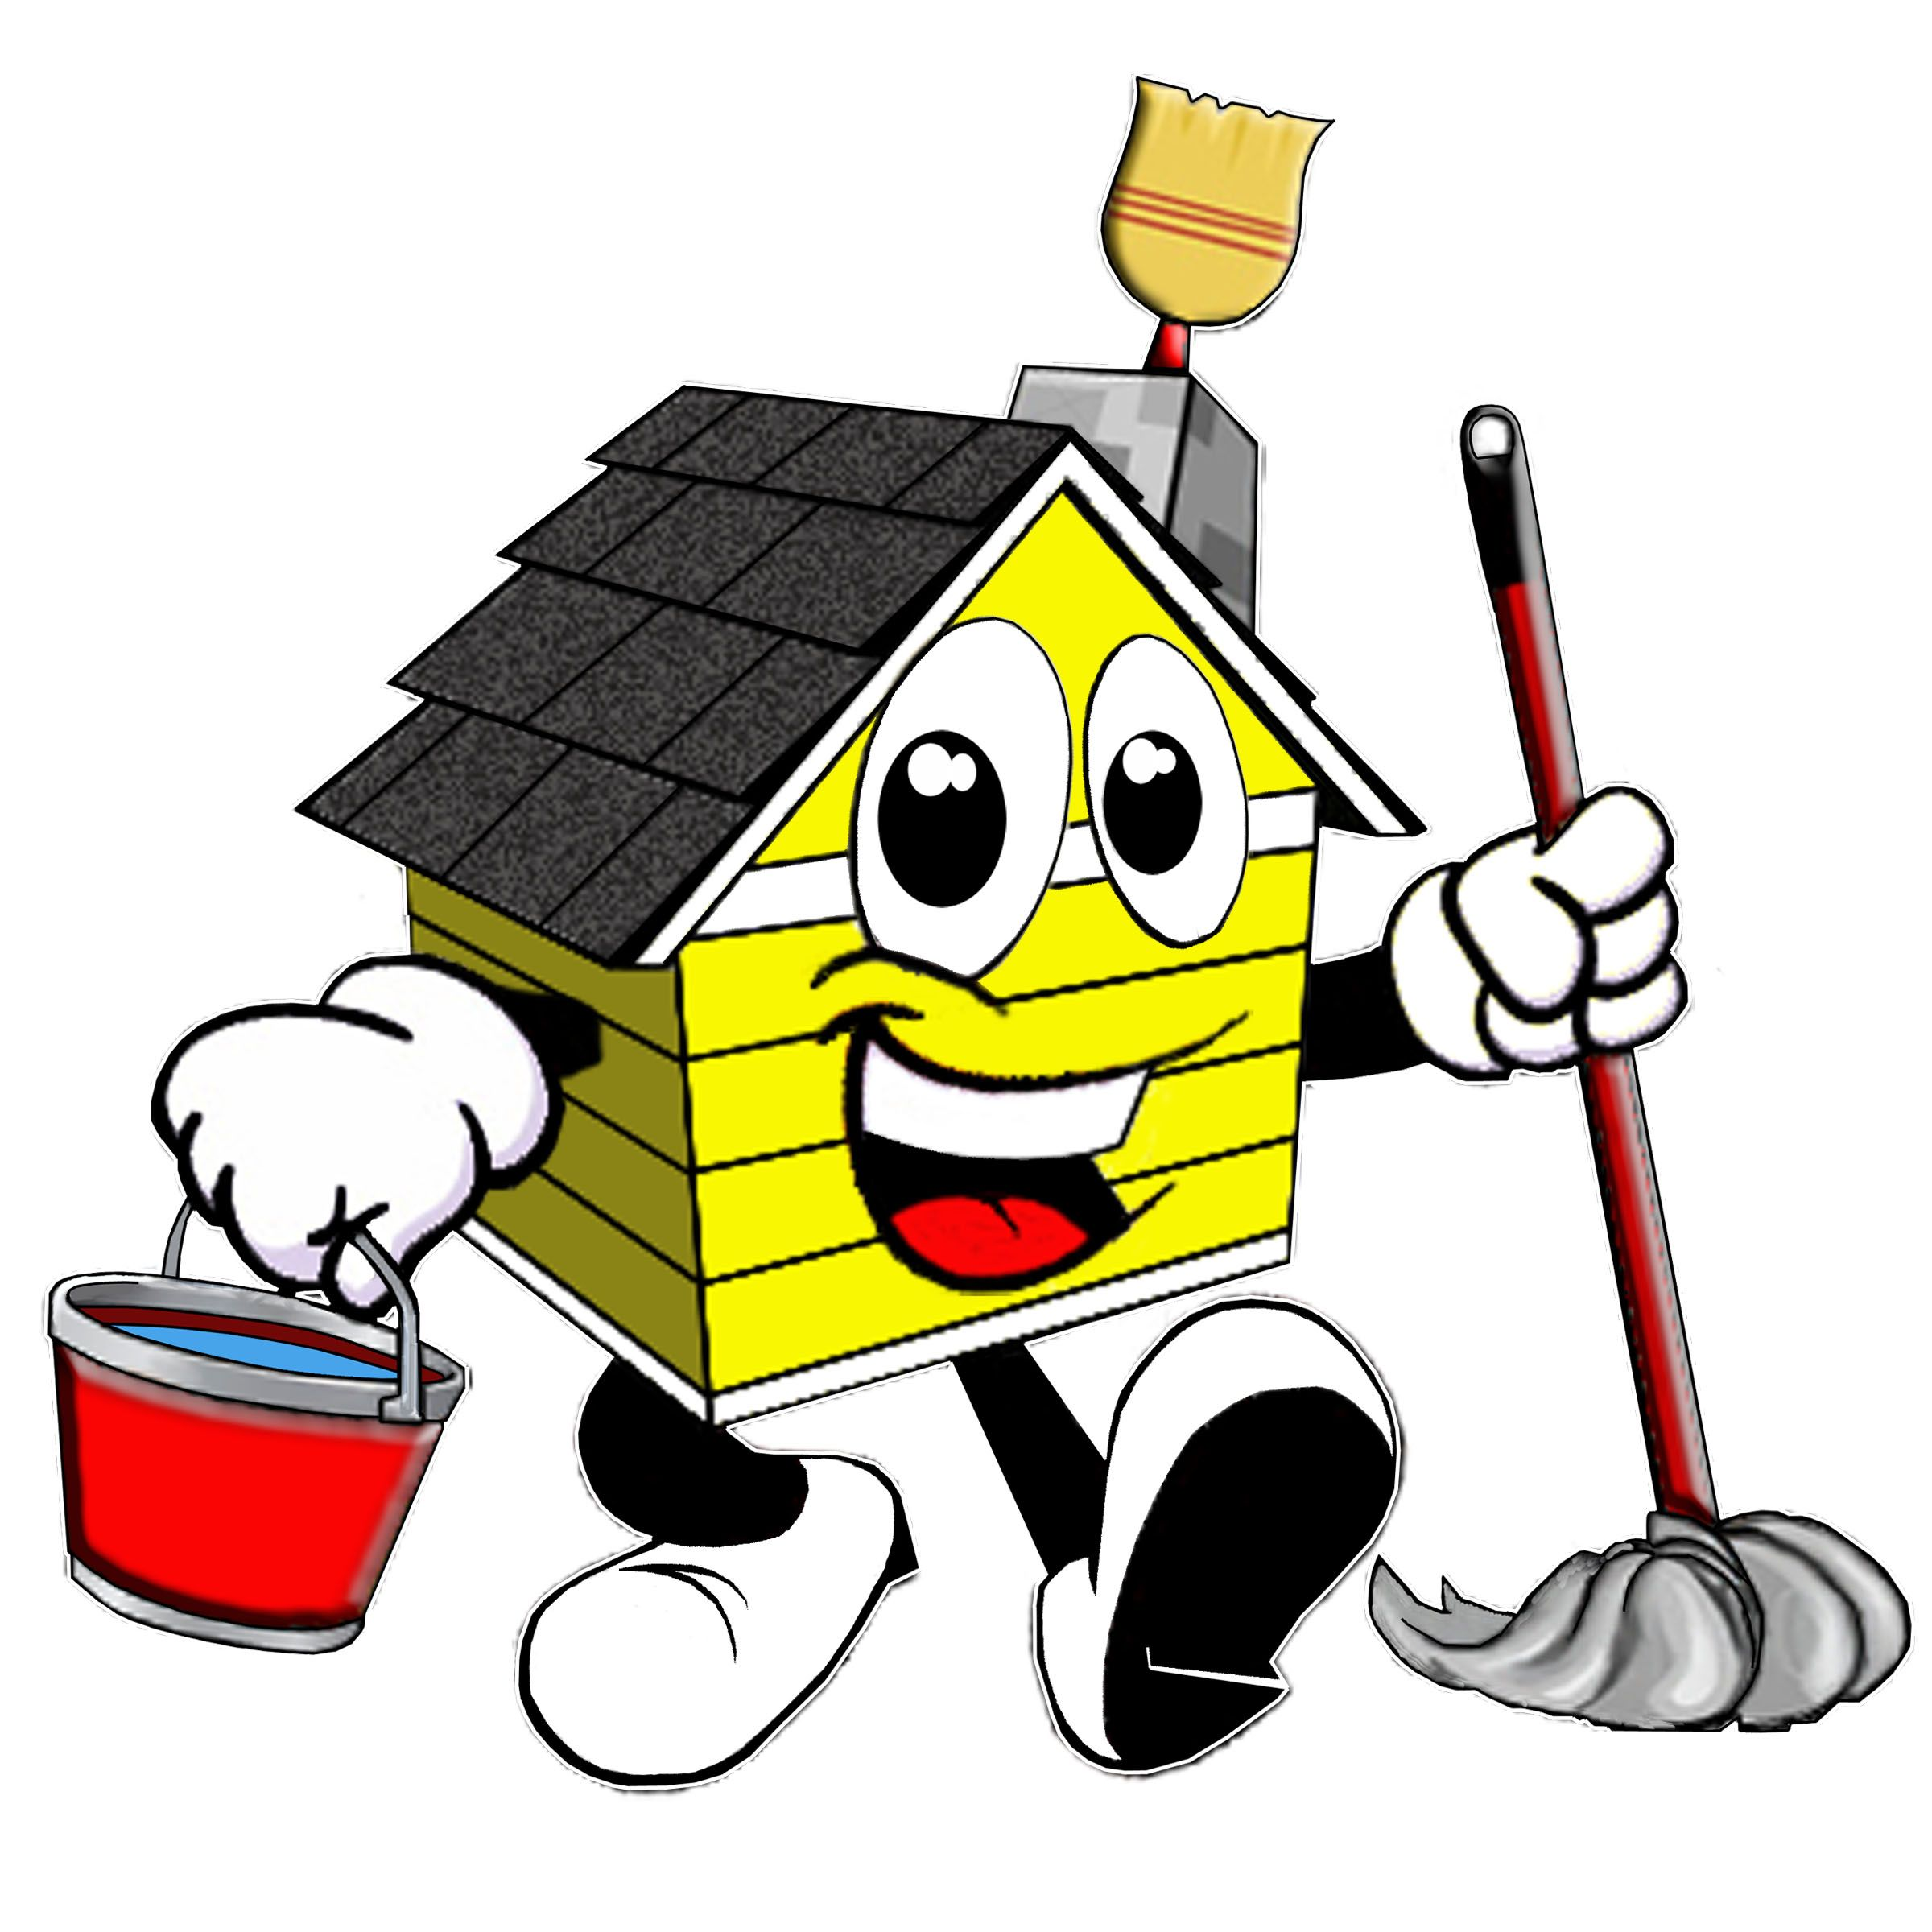 2400x2400 House Cleaning Professional Cartoon House Cleaning Logos